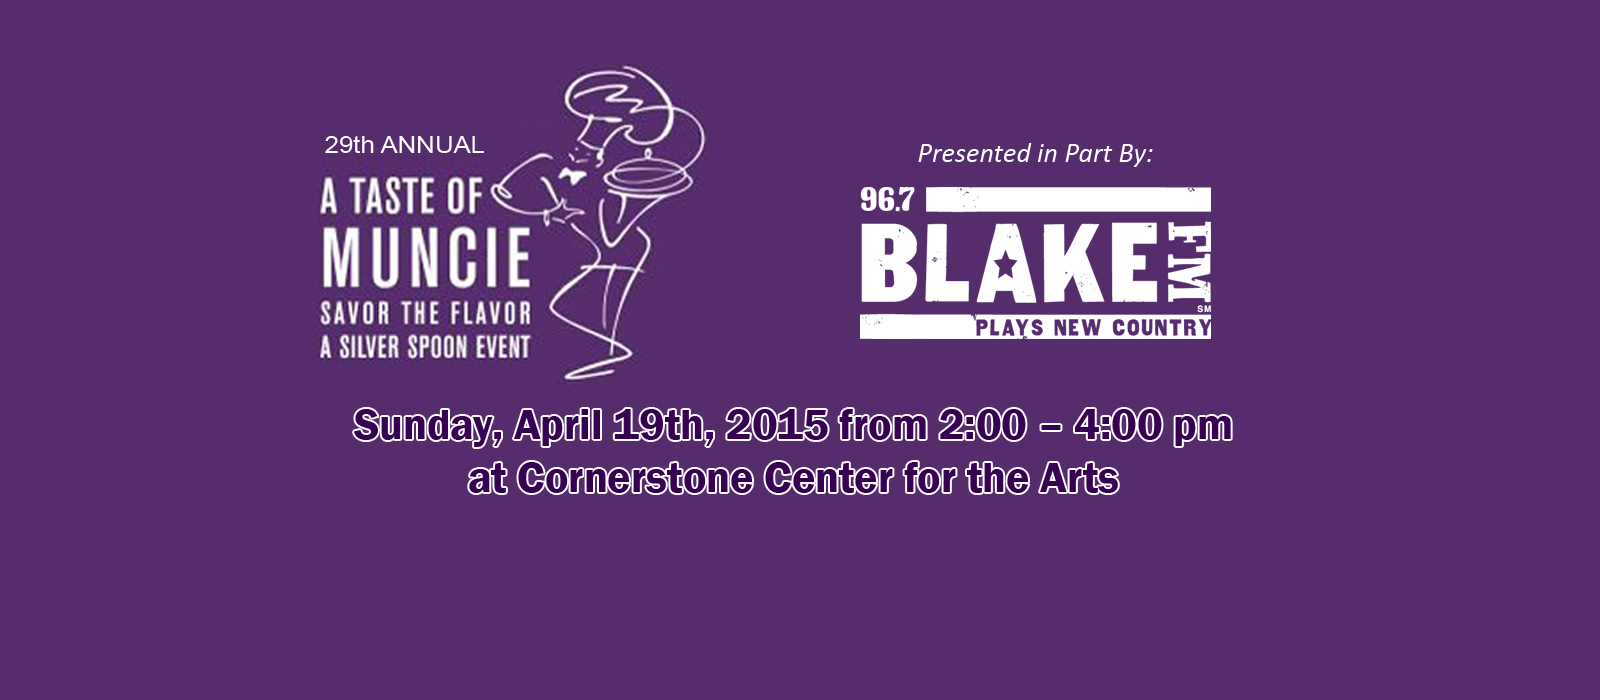 Taste-of-Muncie-BLAKE-copy